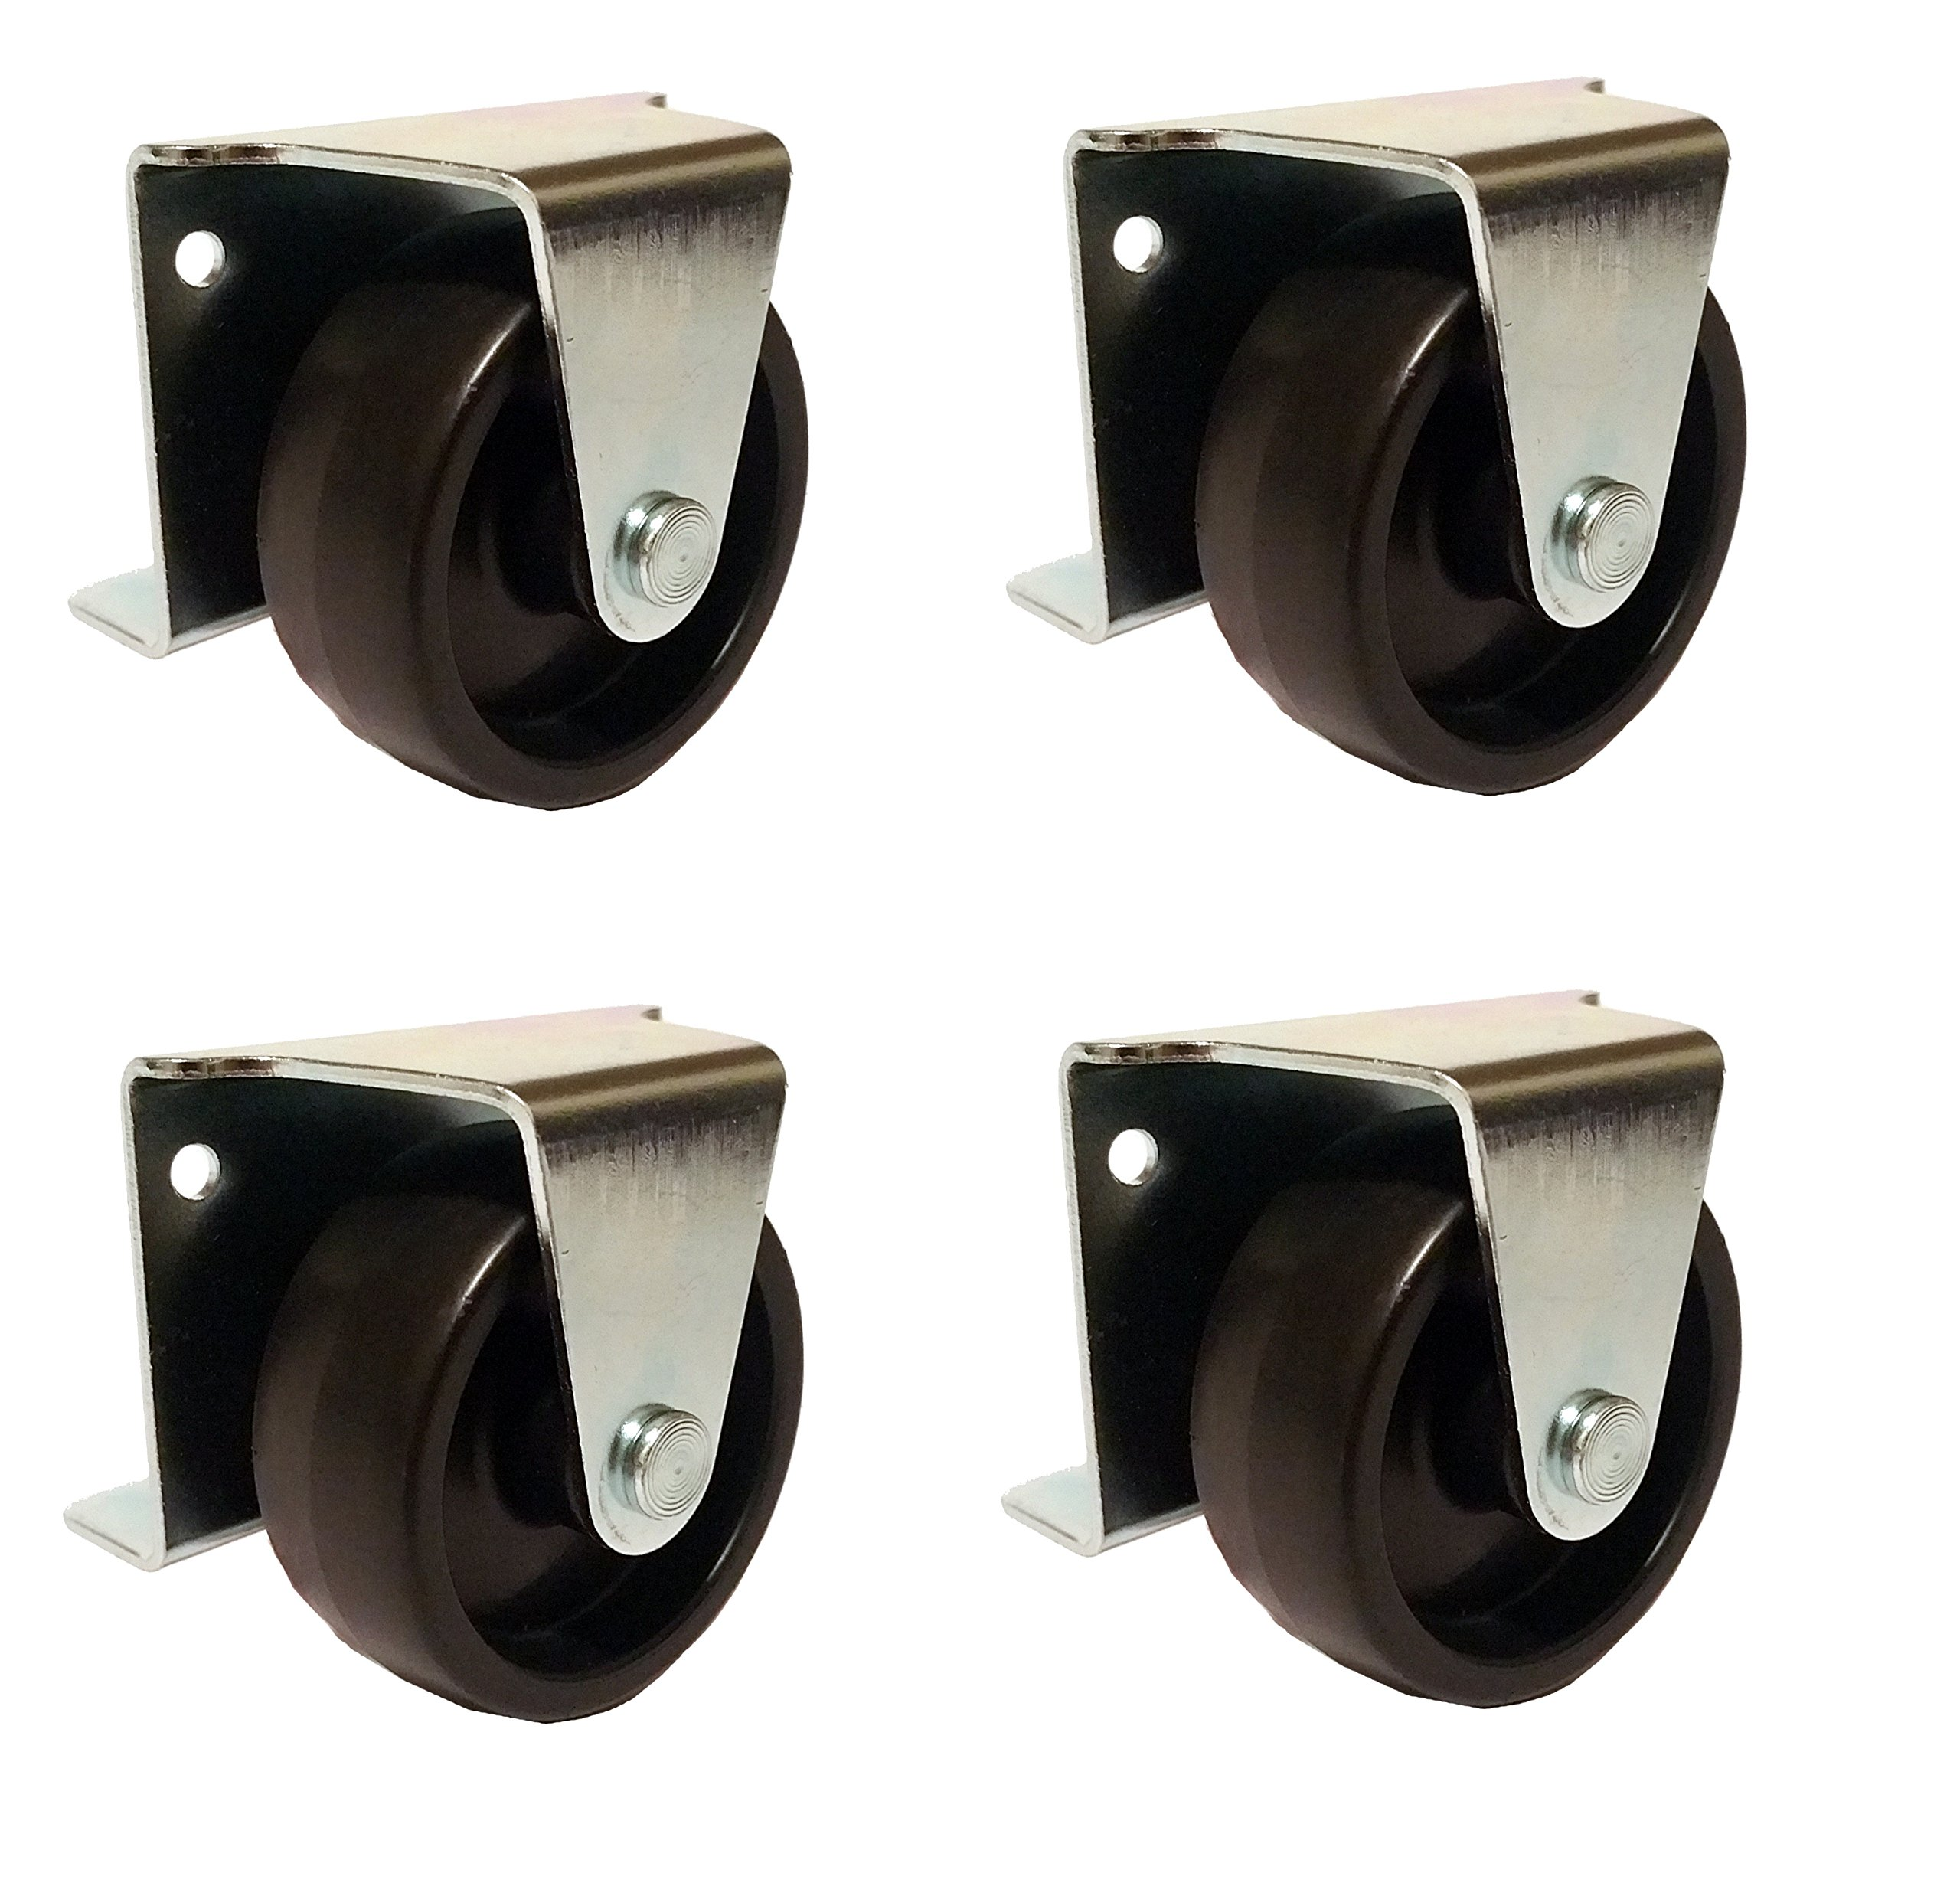 2'' Inch Low Profile Trundle Casters / Wheels Cabinet Roll-Out Bed - Set of 4 by American Bolt & Screw